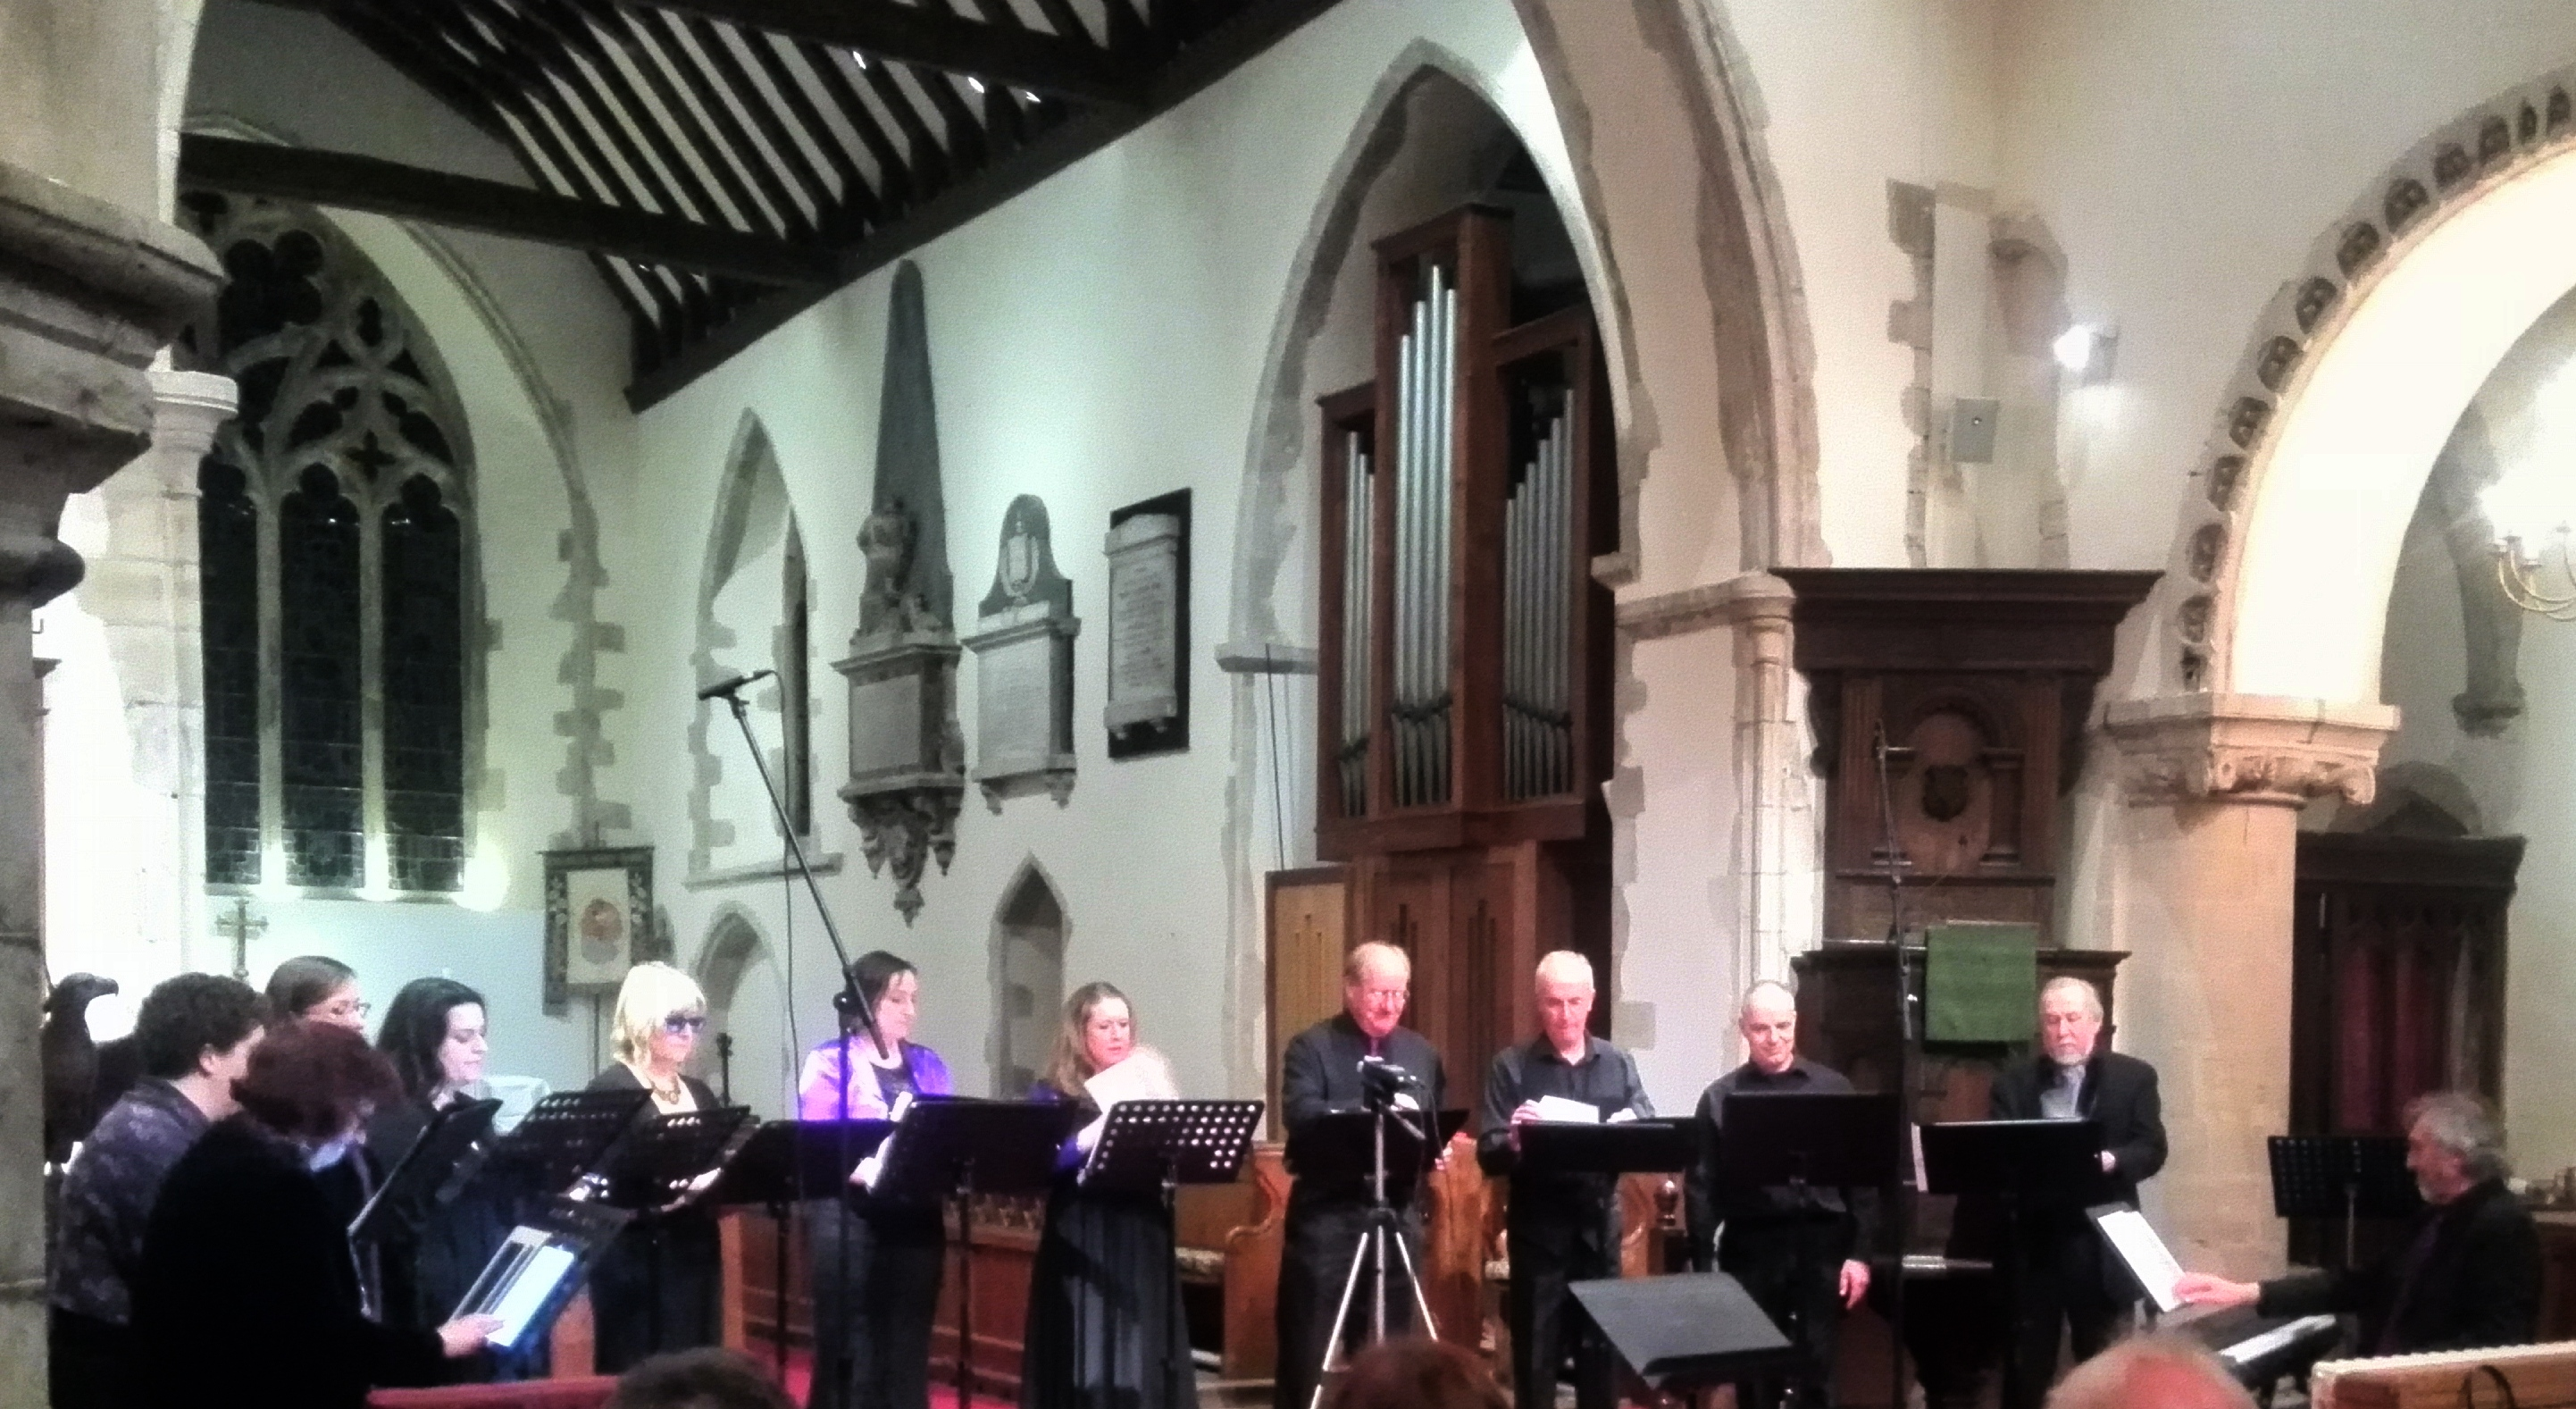 Cantate in church